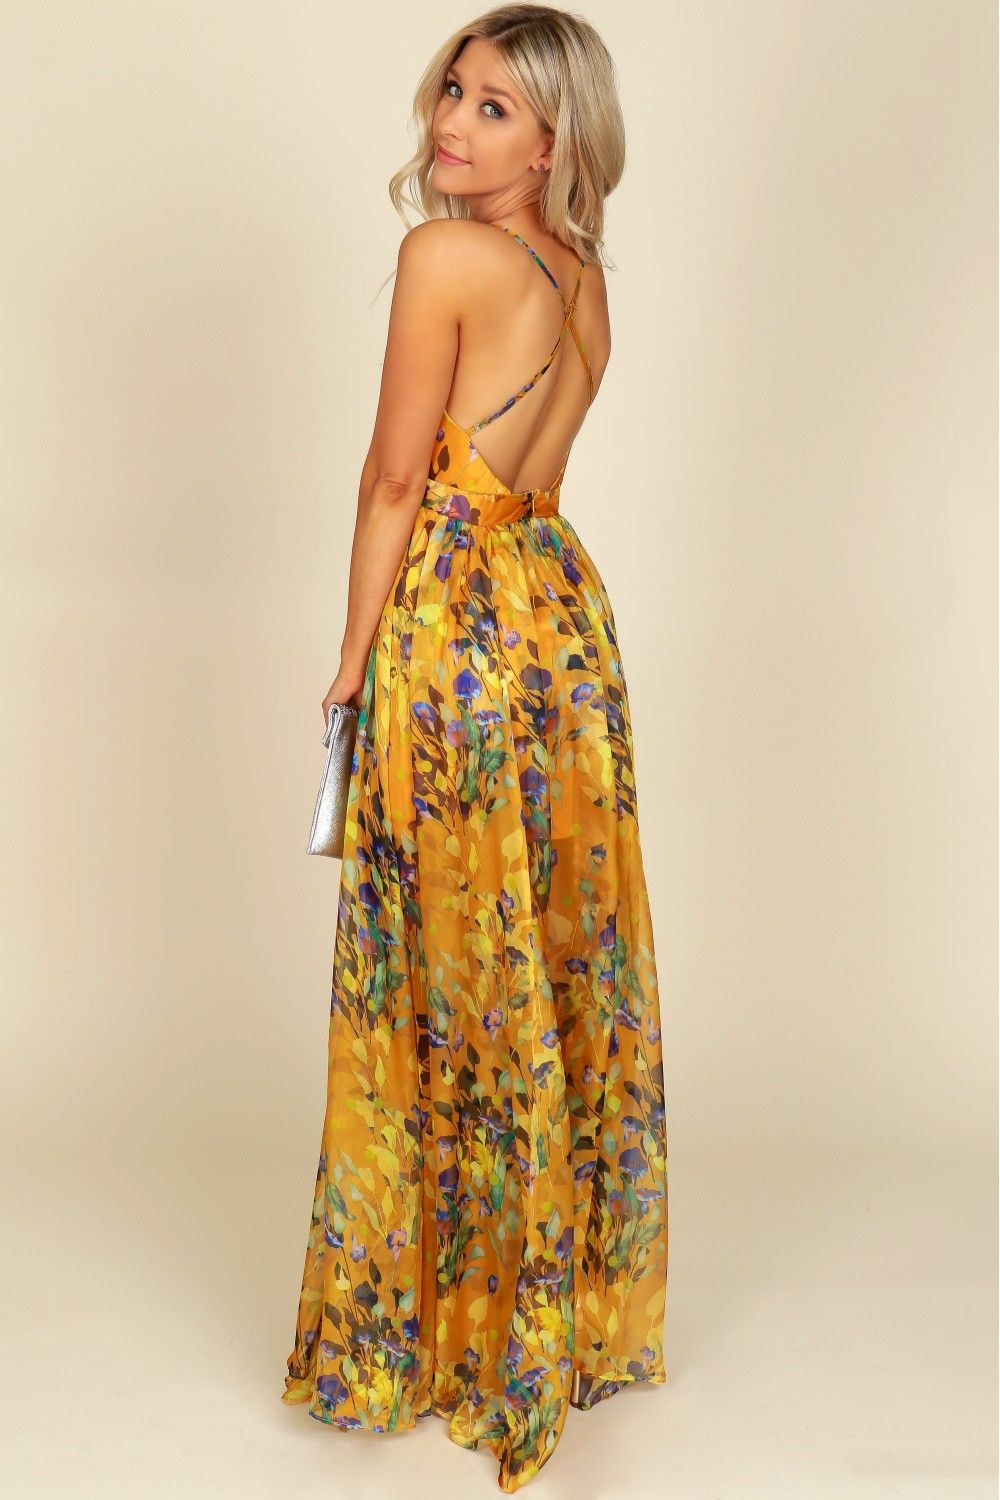 75368a5d0988 Vibrant Floral Maxi Dress Yellow in 2019 | fashion | Floral maxi ...